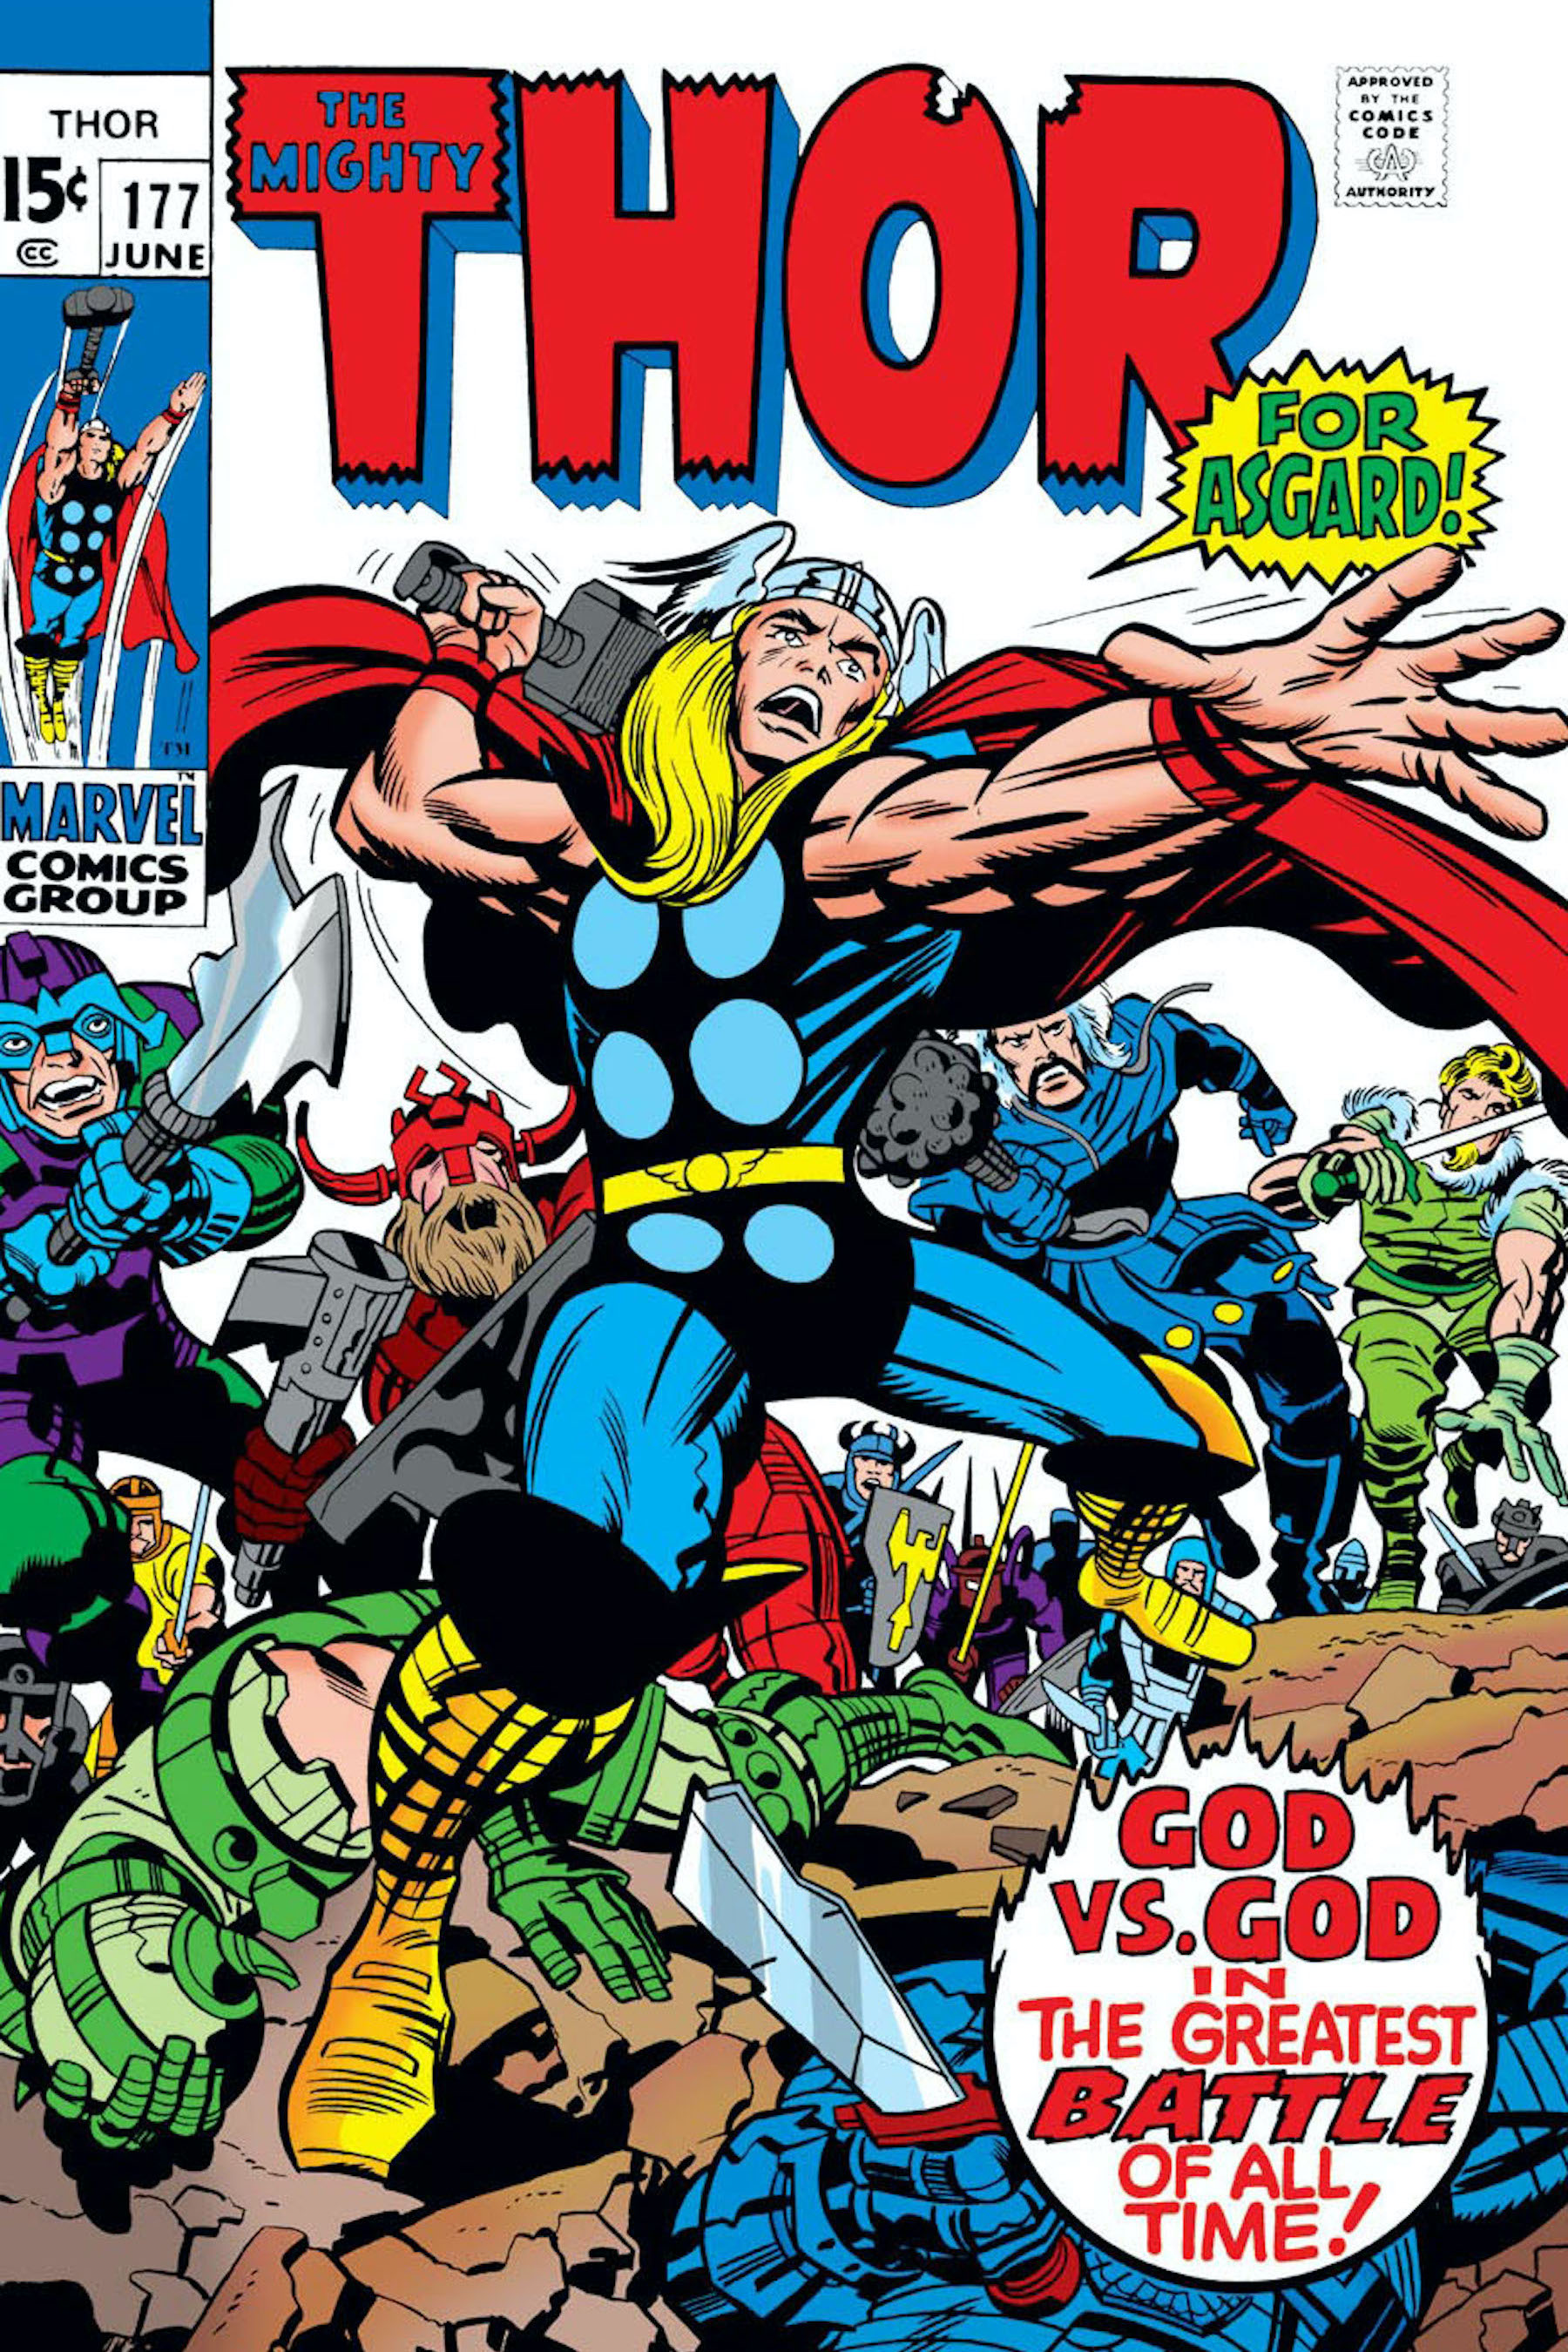 Trevor Lawrence by<strong>Wellington</strong>Alves, after THOR #177 by Jack Kirby